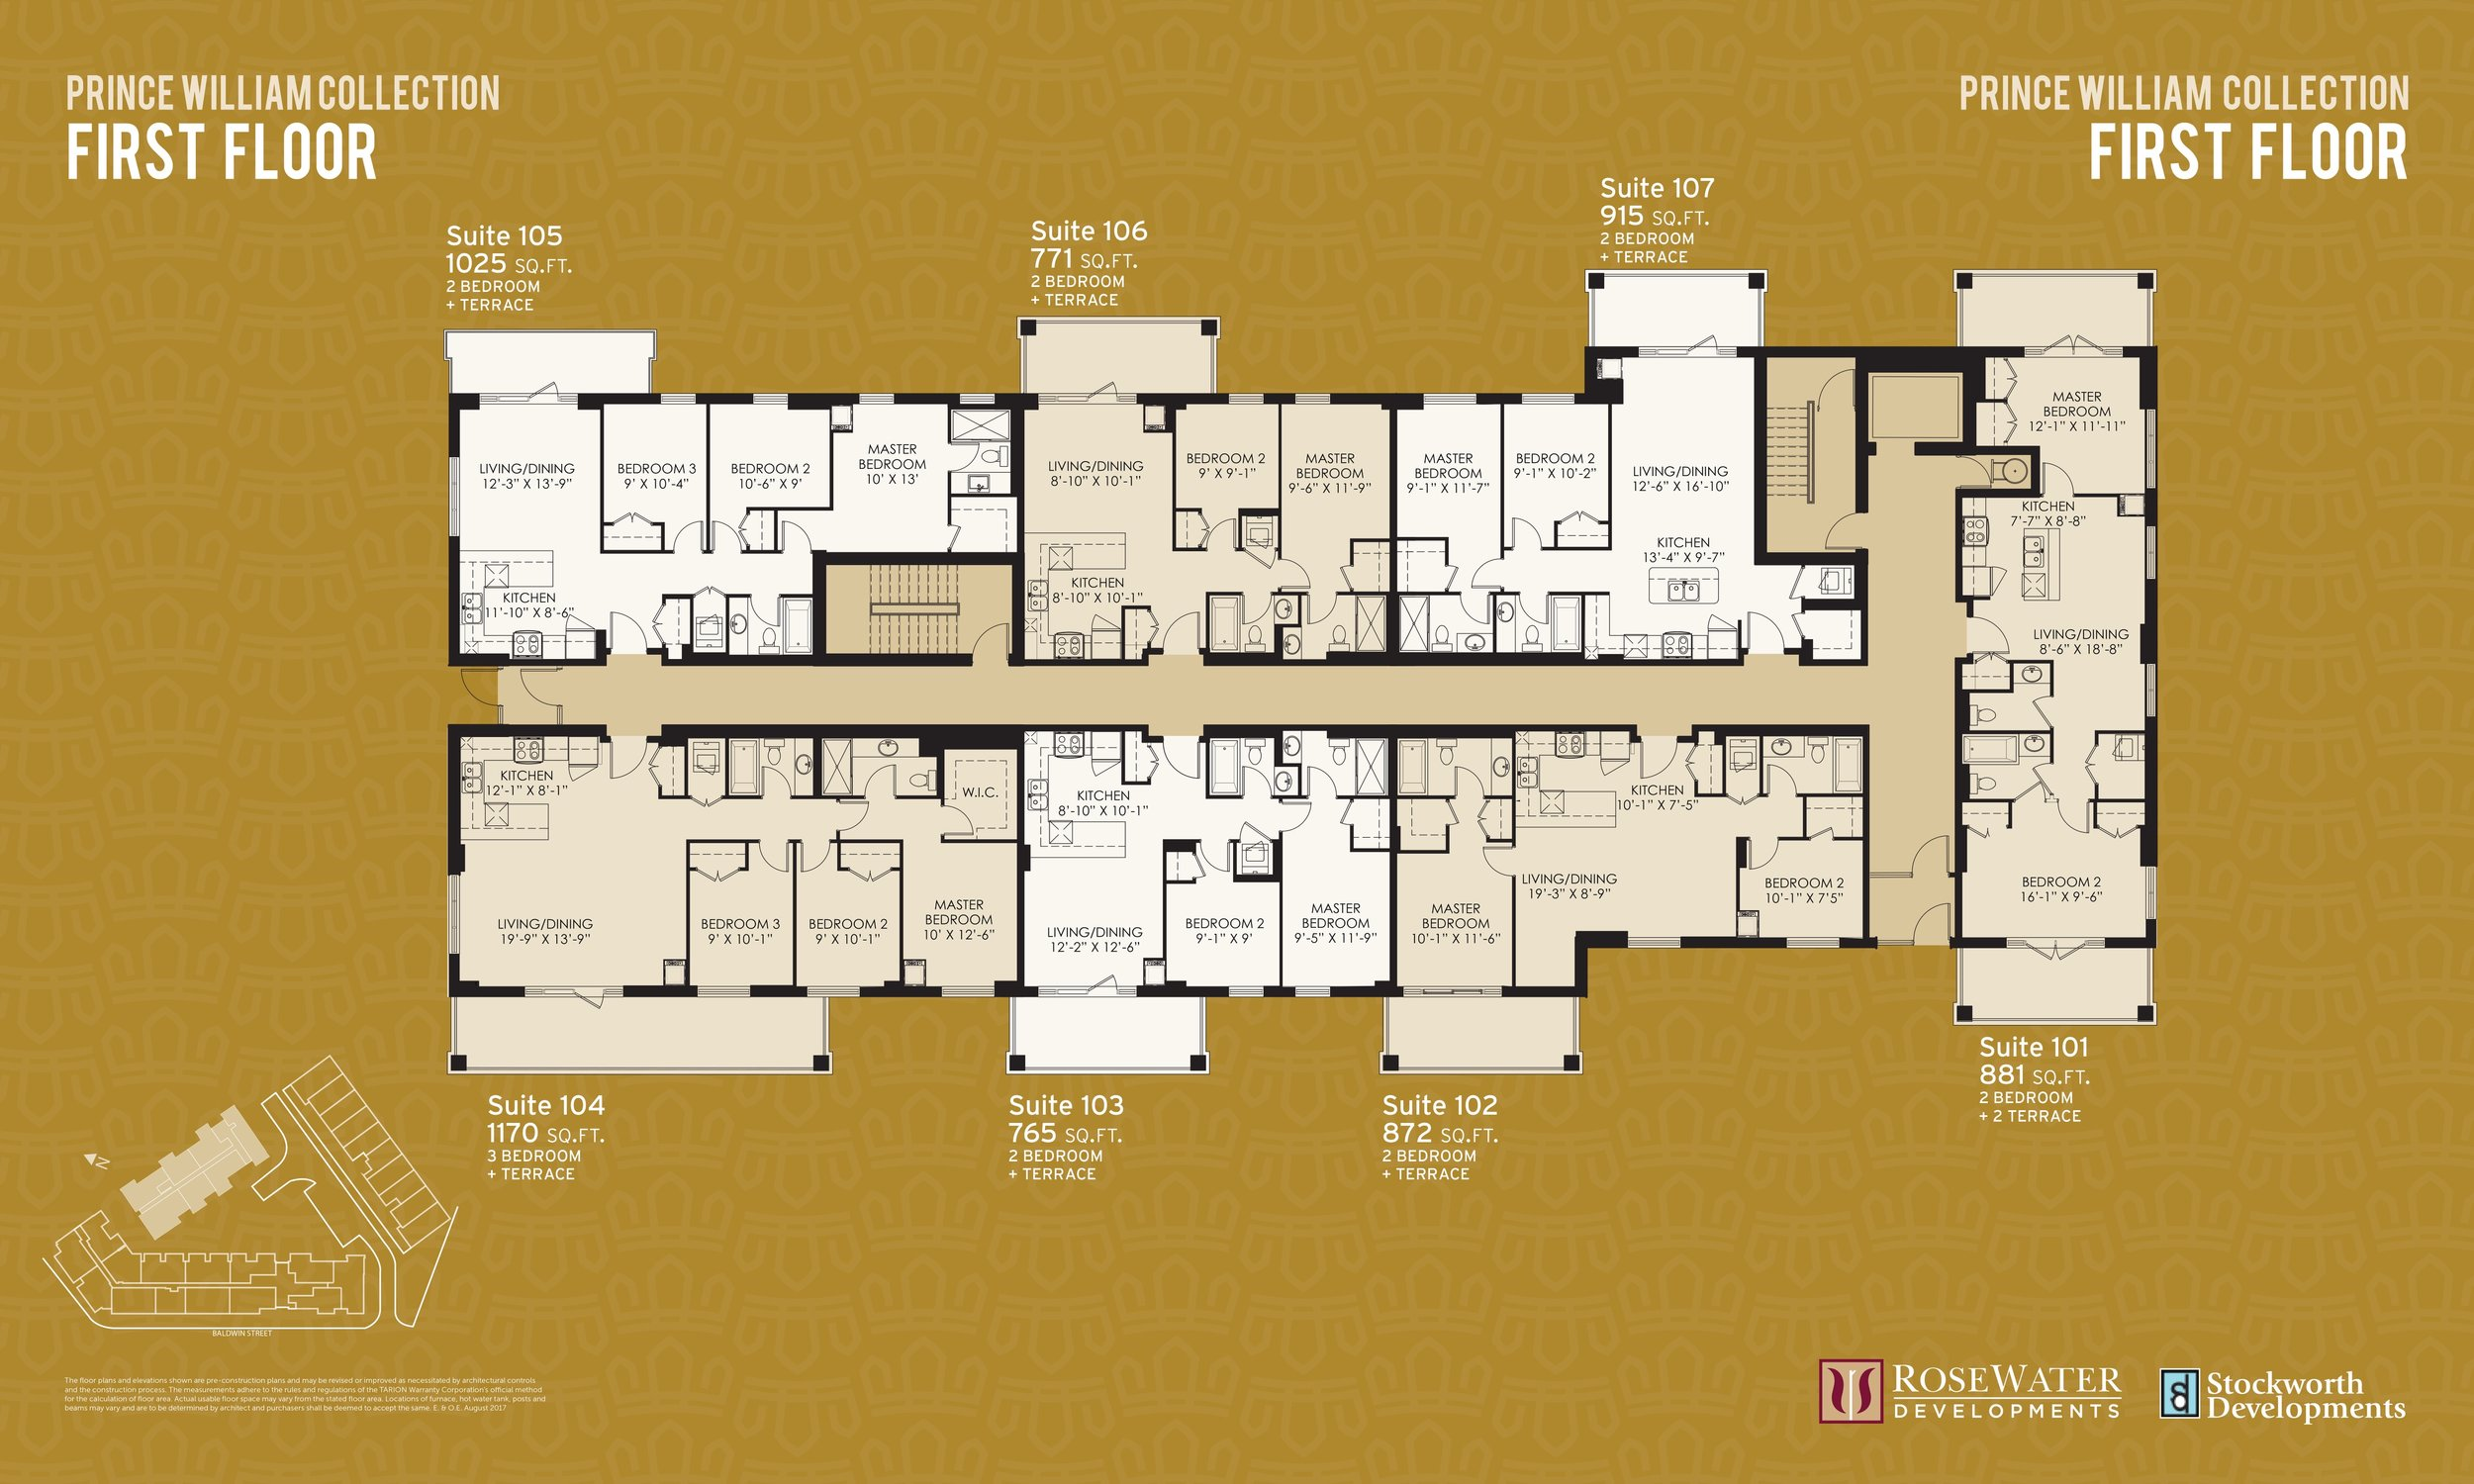 Prince William First Level Floor Plan